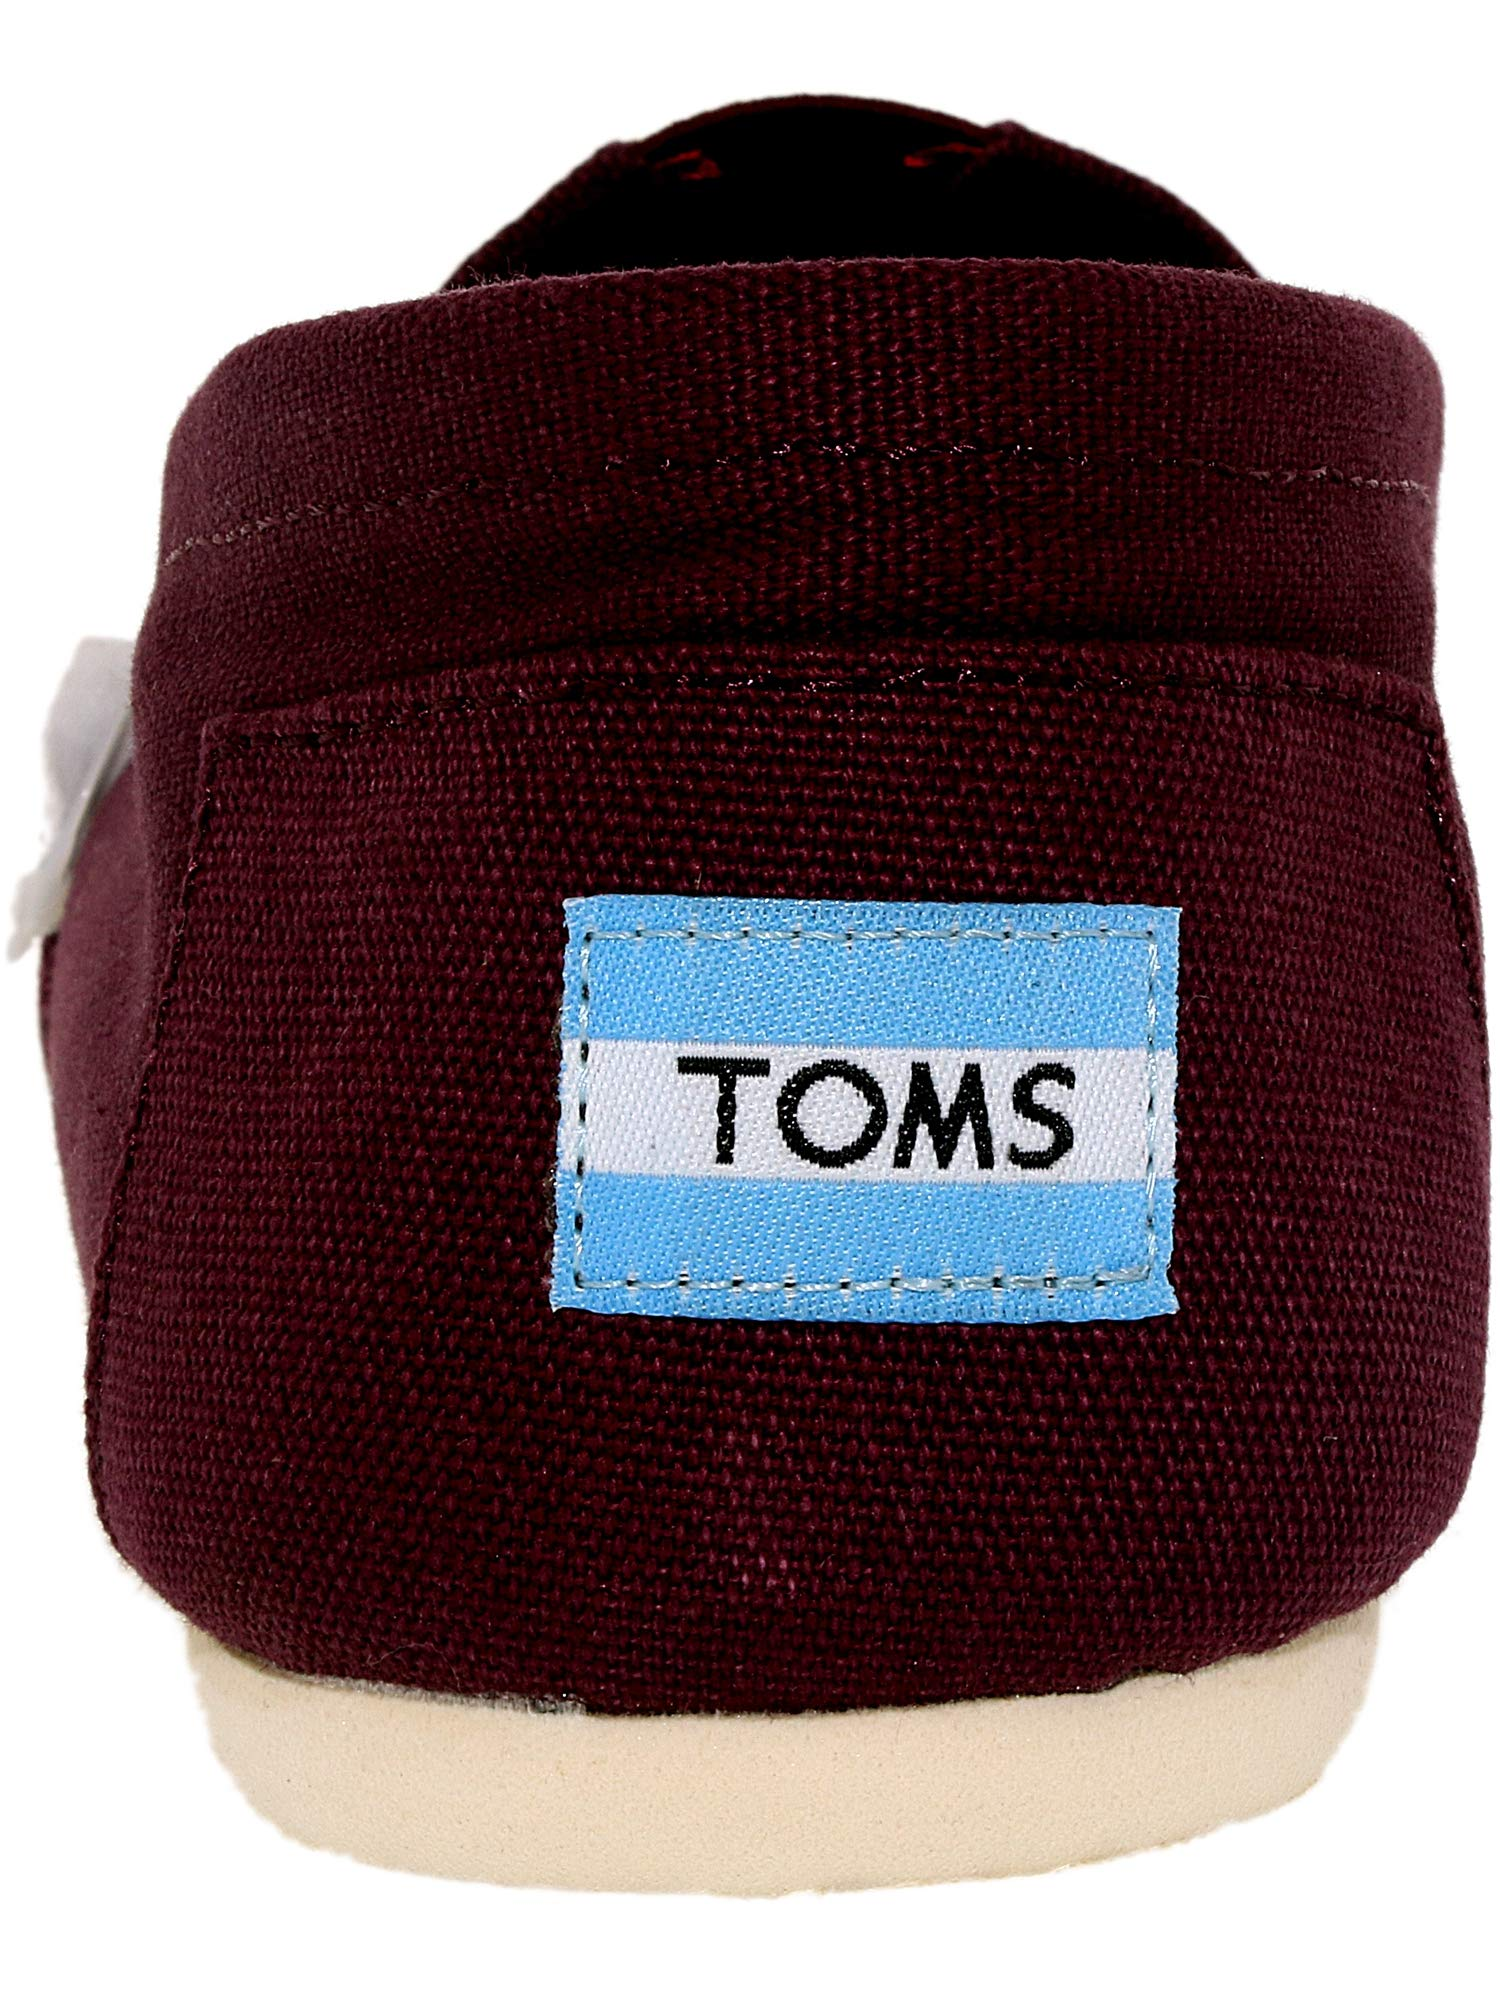 TOMS Men's Classic Canvas Slip-On, Red Mahogany Canvas - 11.5 D(M) US by TOMS (Image #4)